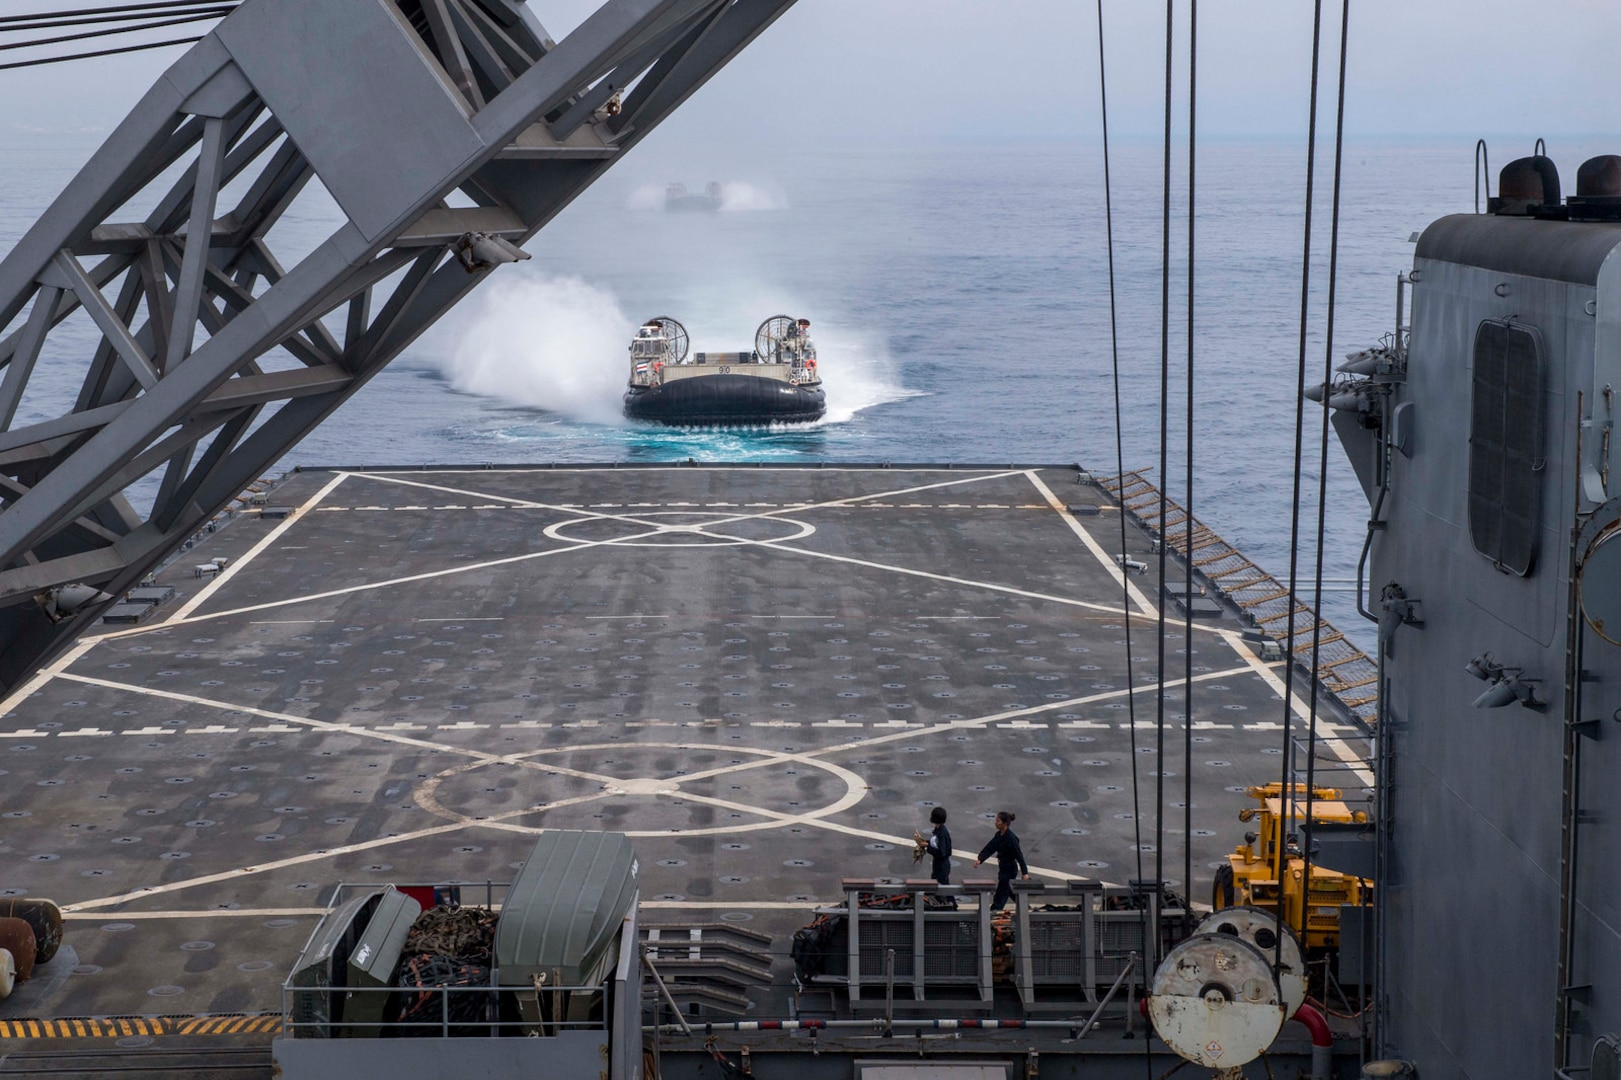 USS Rushmore concludes exercise Iron Fist 2018